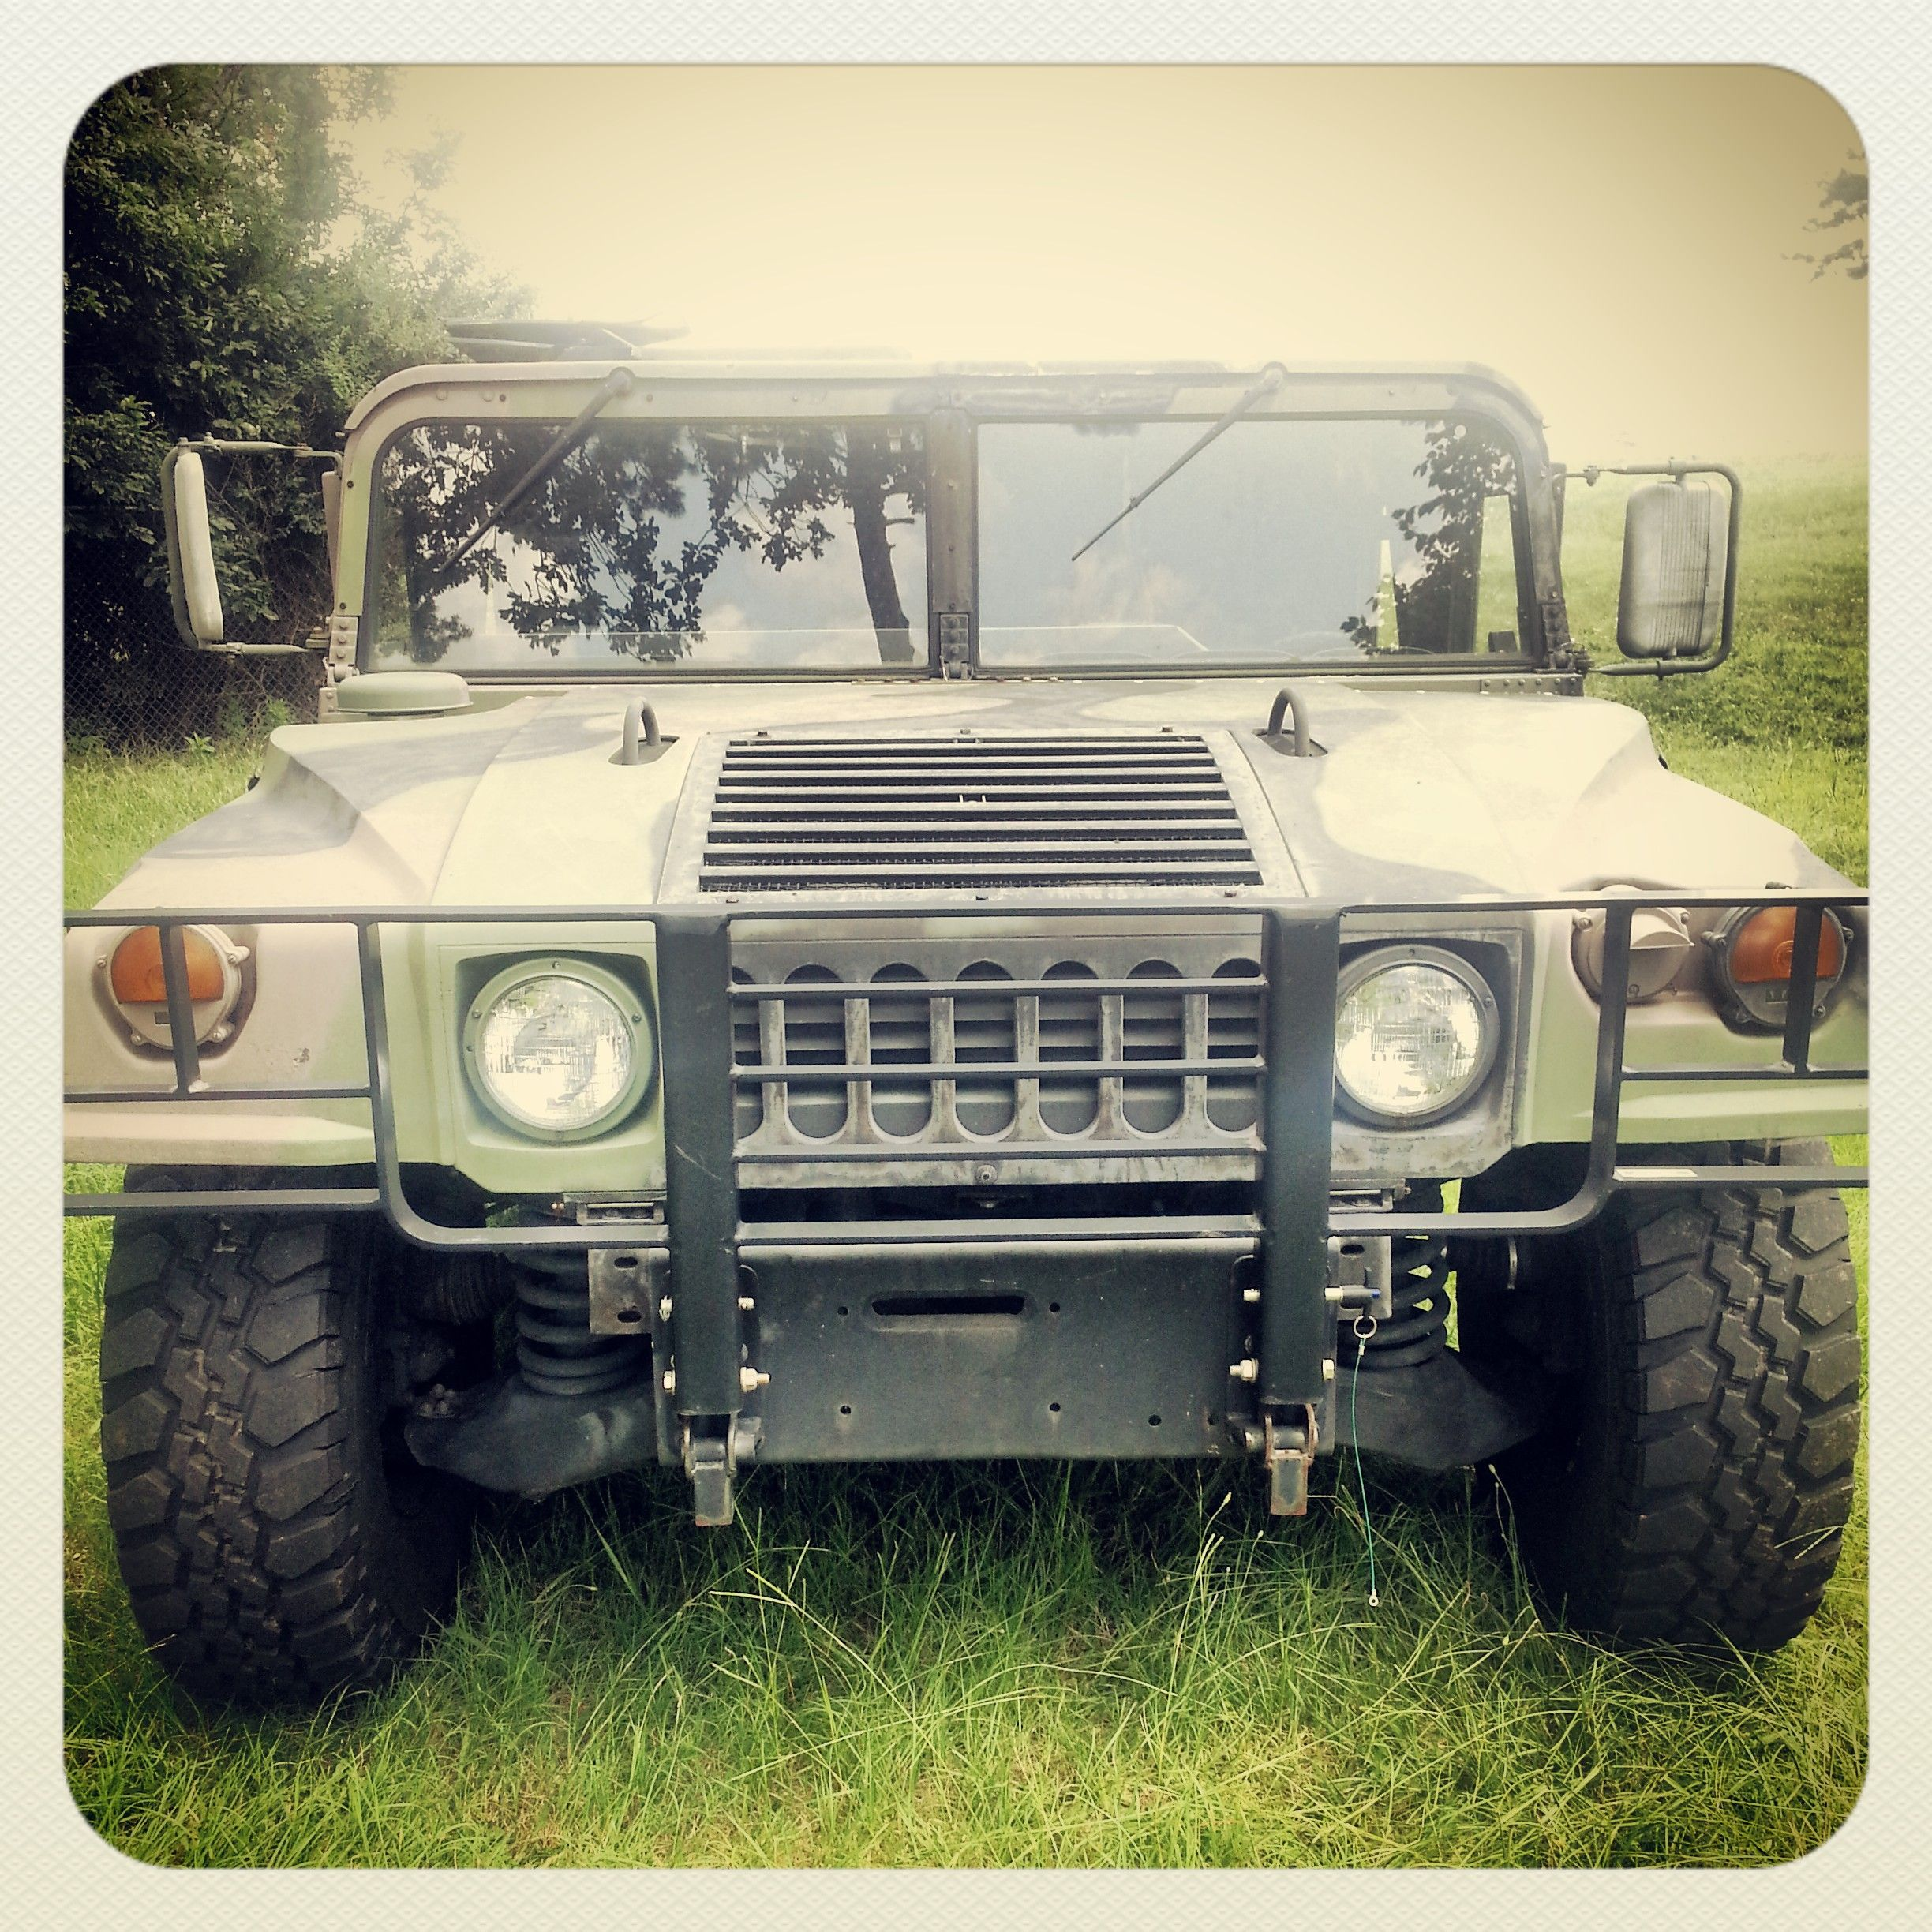 USMC Humvee from Kascar we used during our Medals of America photoshoot. http://instagram.com/moa1976